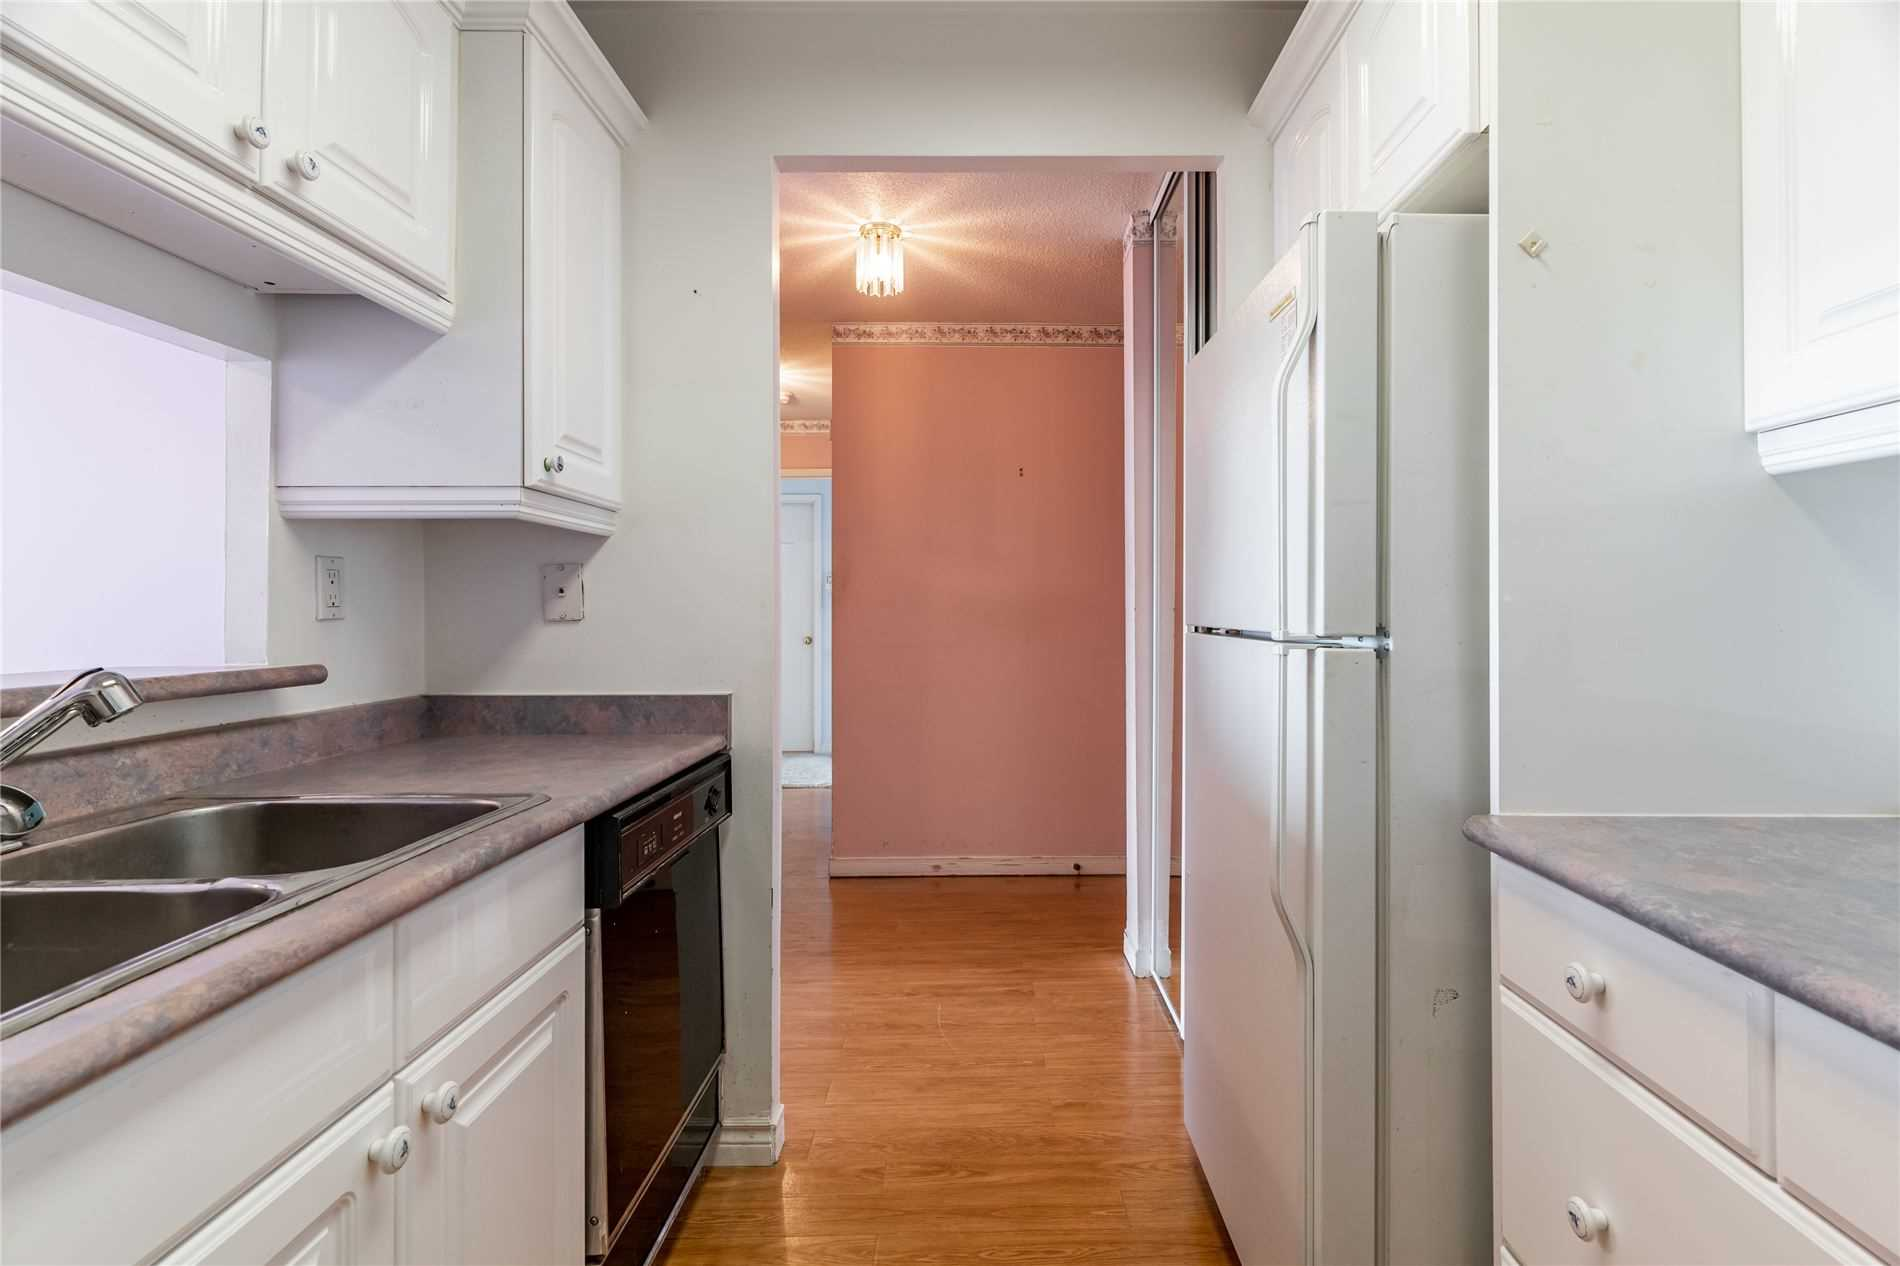 Image 2 of 40 showing inside of 2 Bedroom Condo Apt Apartment for Sale at 1665 Pickering Pkwy Unit# 812, Pickering L1V6L4